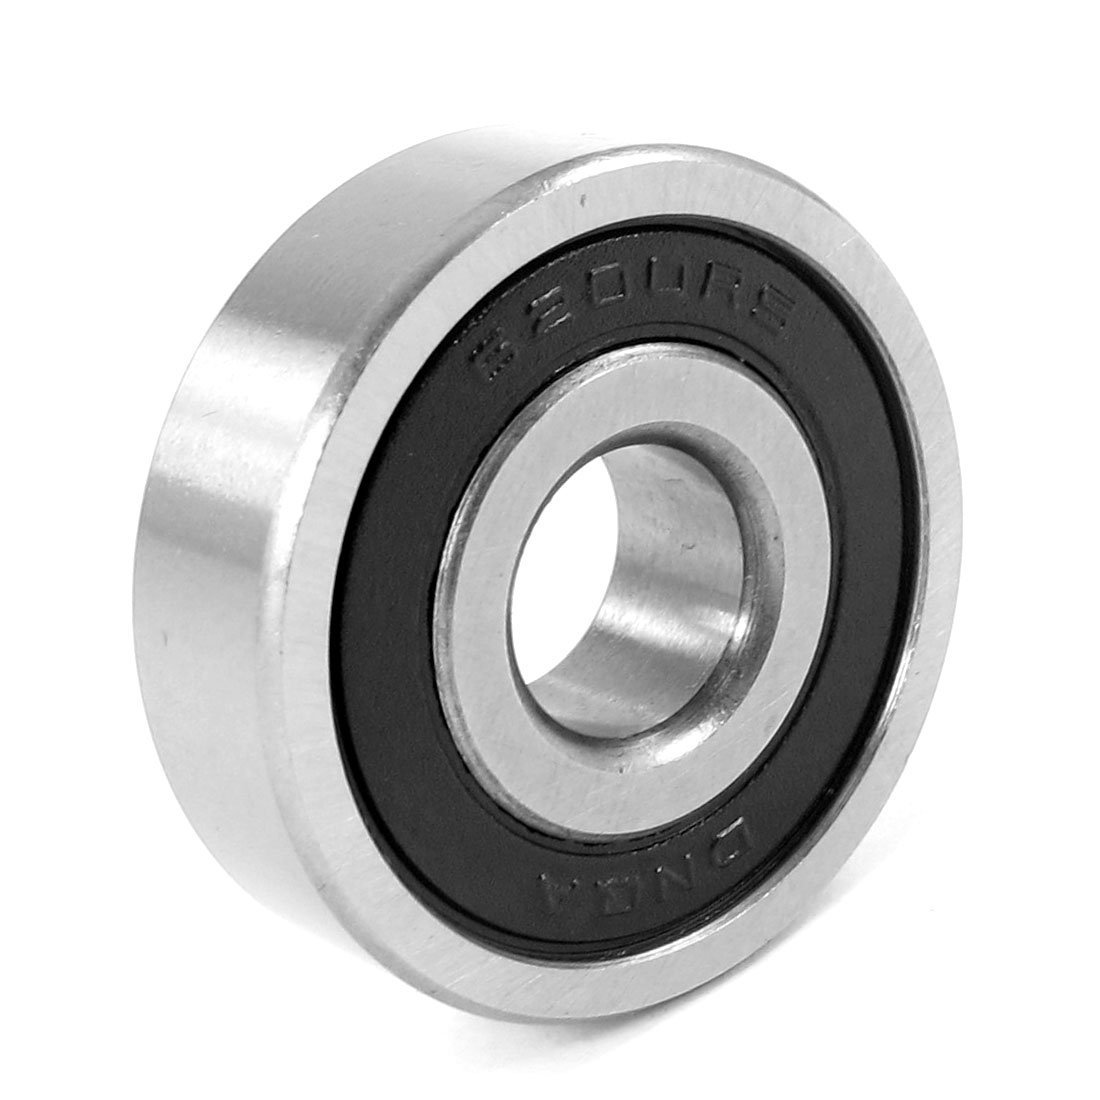 Sourcingmap 6200RS Deep Groove Ball Bearing Black 30 x 10 x 9mm - Silver a13062400ux0642